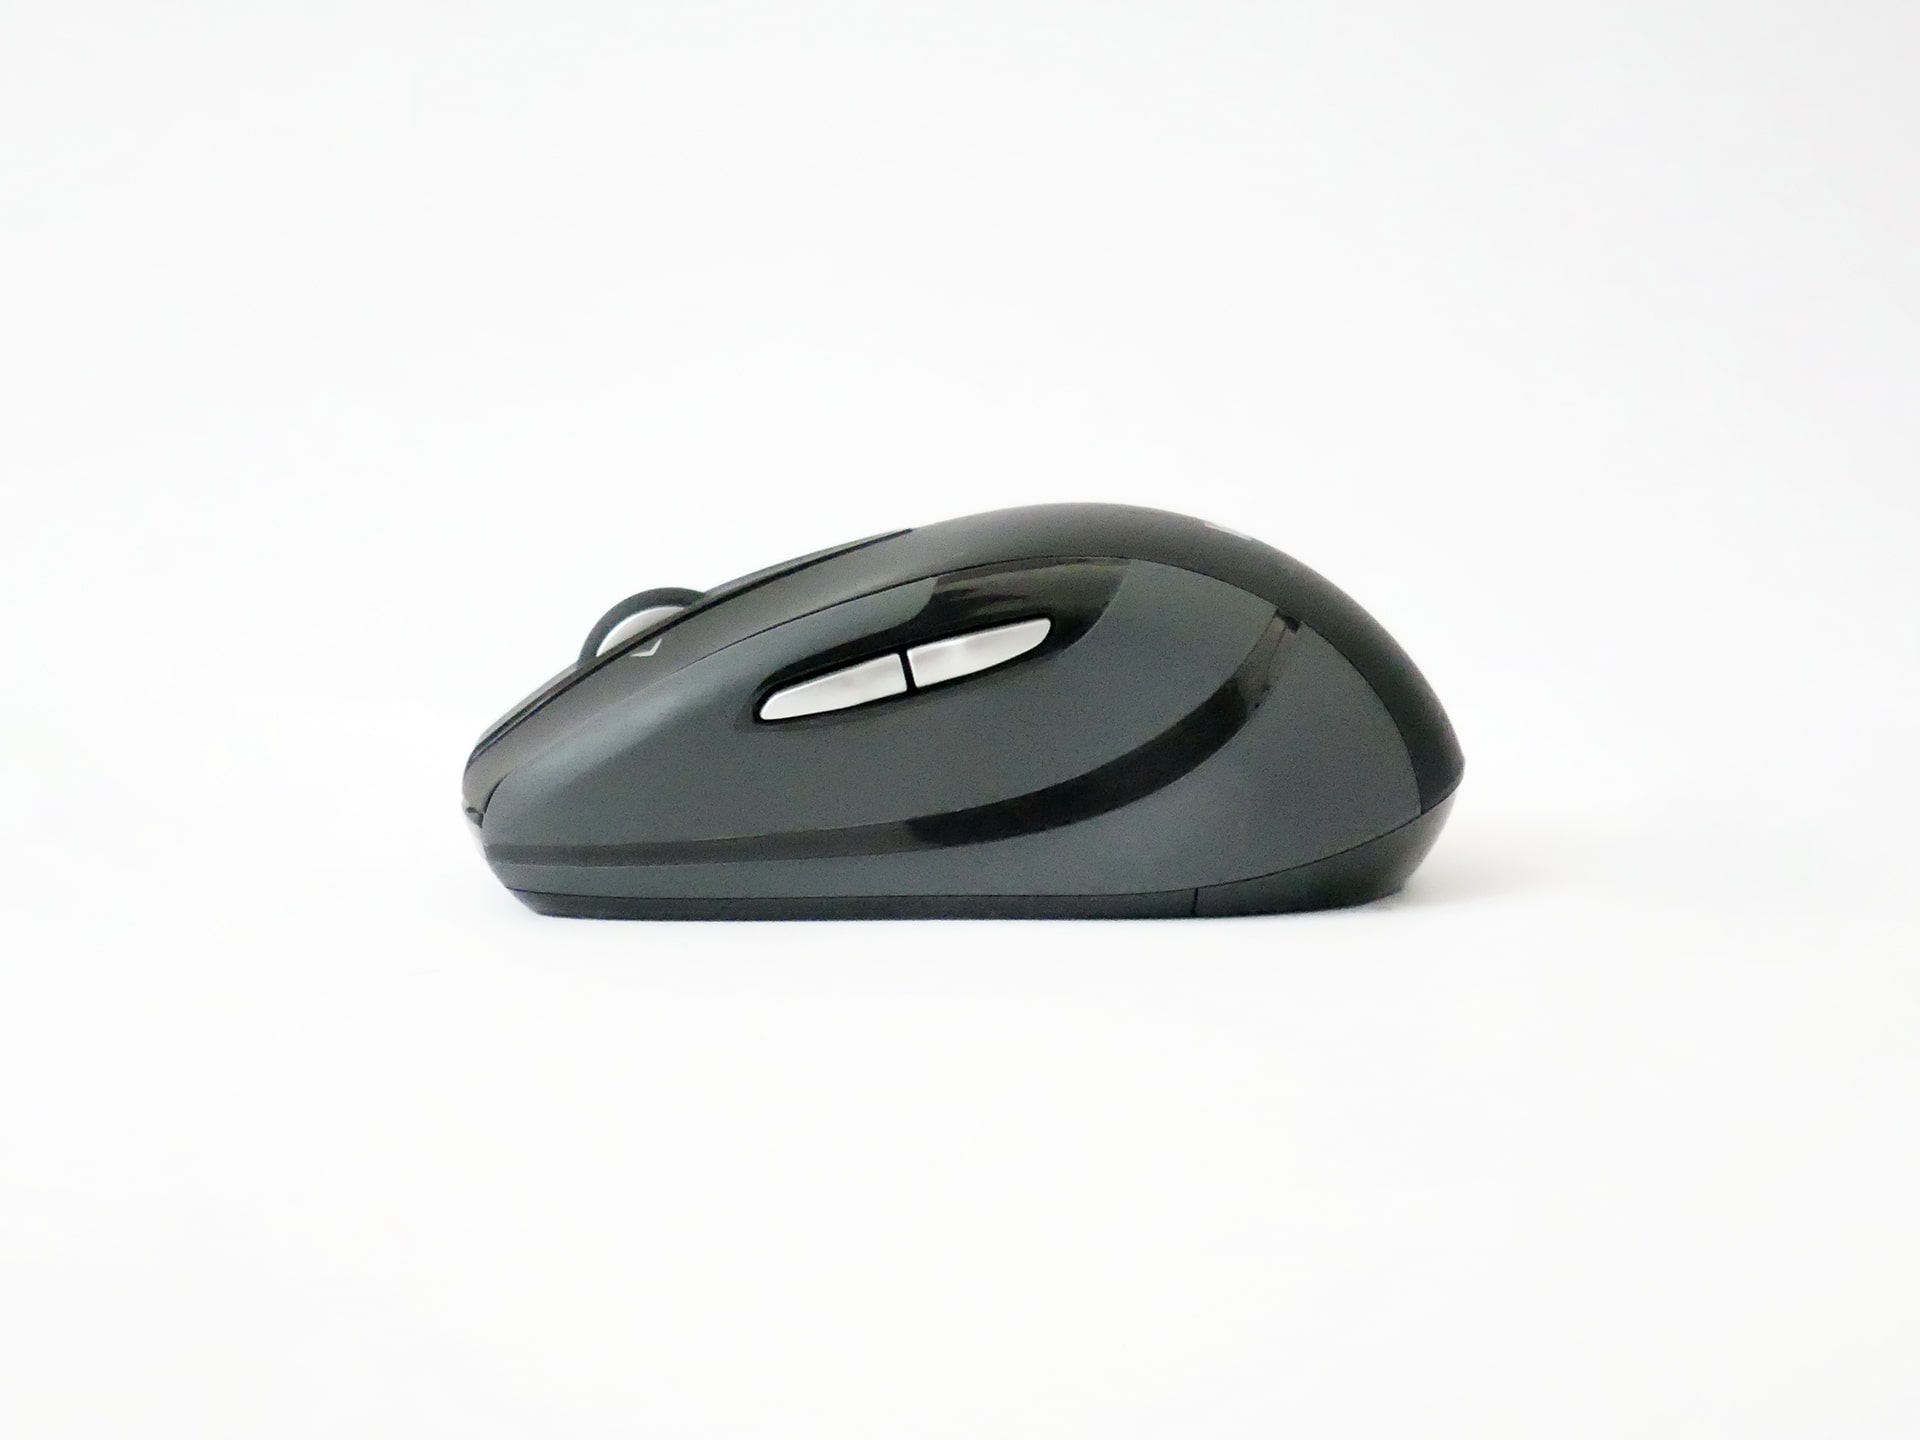 Logicool Wireless Mouse M546左側面